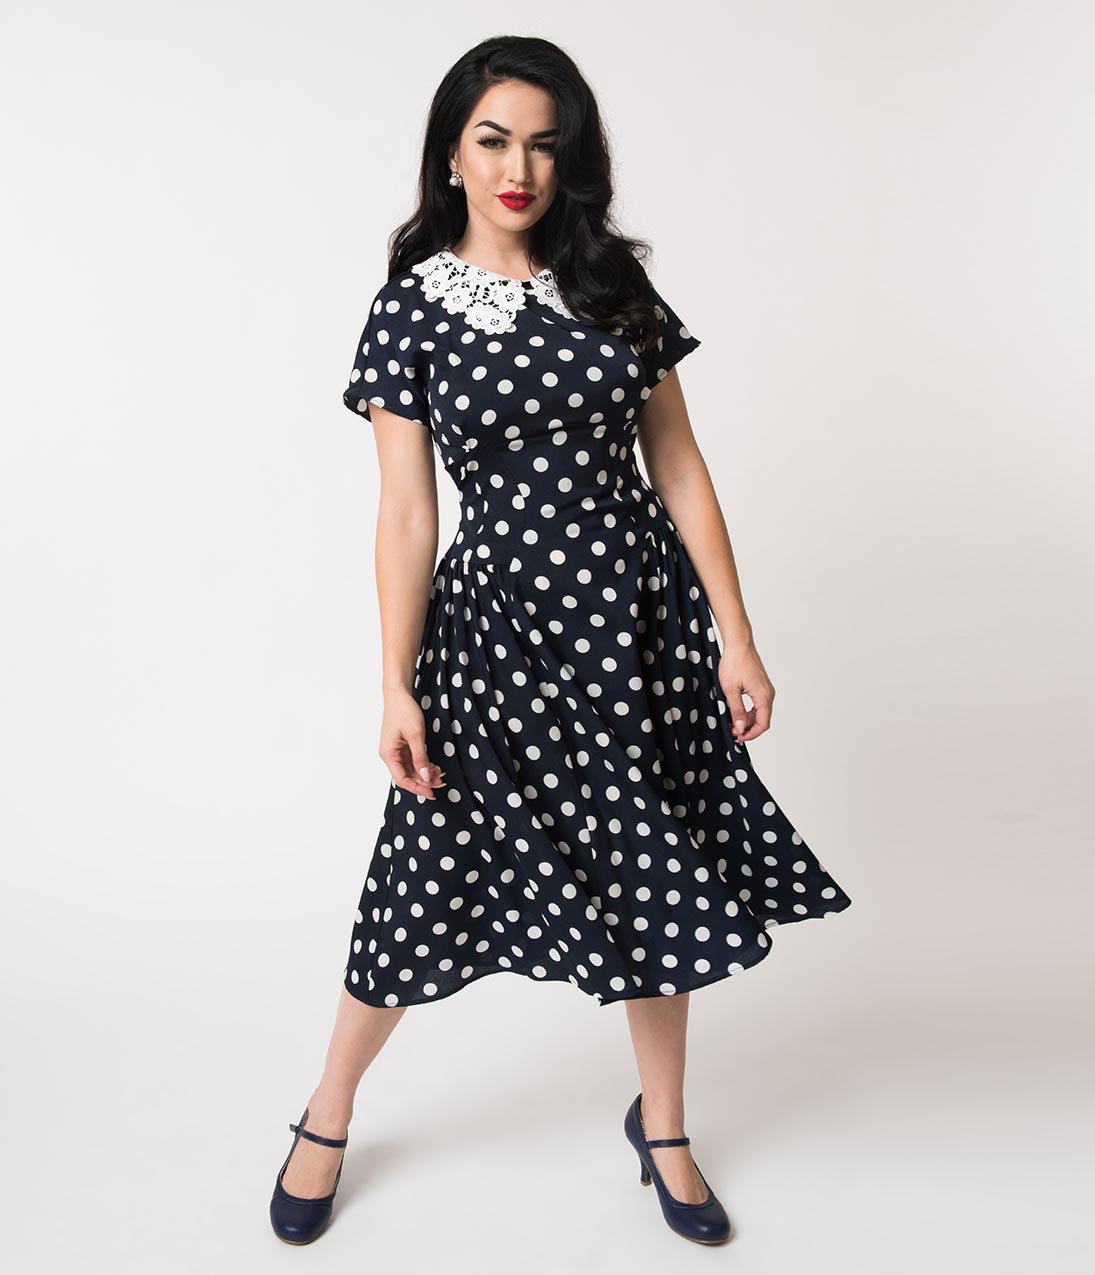 8c87c584217 500 Vintage Style Dresses for Sale Unique Vintage 1940S Navy White Polka Dot  Lace Collar Margie